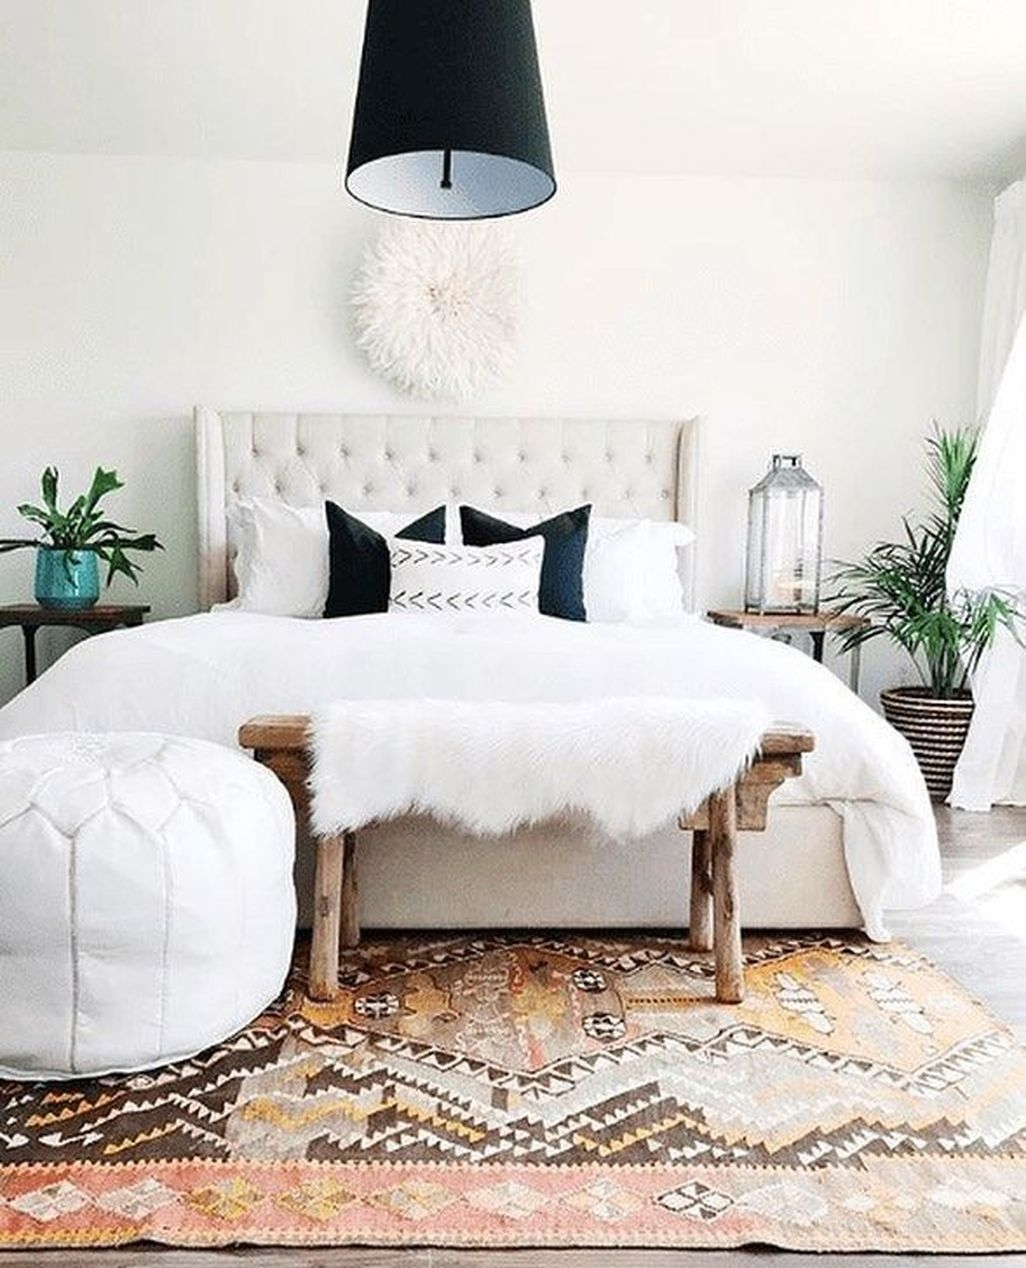 Vintage Nest Bedroom Decoration Ideas You Will Totally Love 10